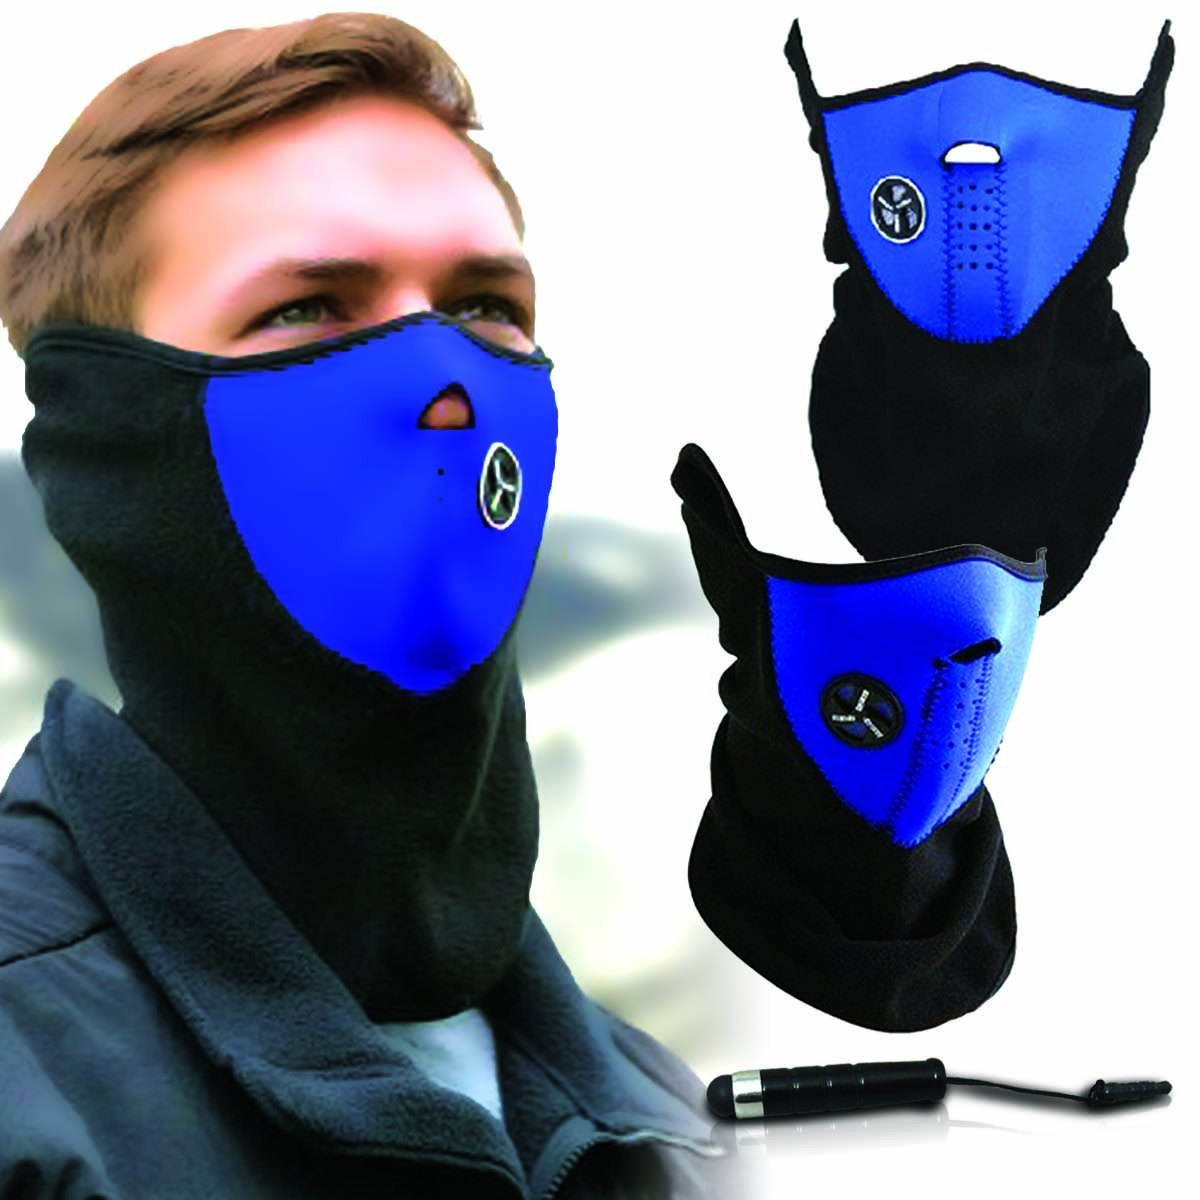 Unisex Ski Mask Neck Warmer, Neoprene Face Mask Winter Cold Weather Face Mask for Motorcycles, Bicycle, Skiing, Running... by